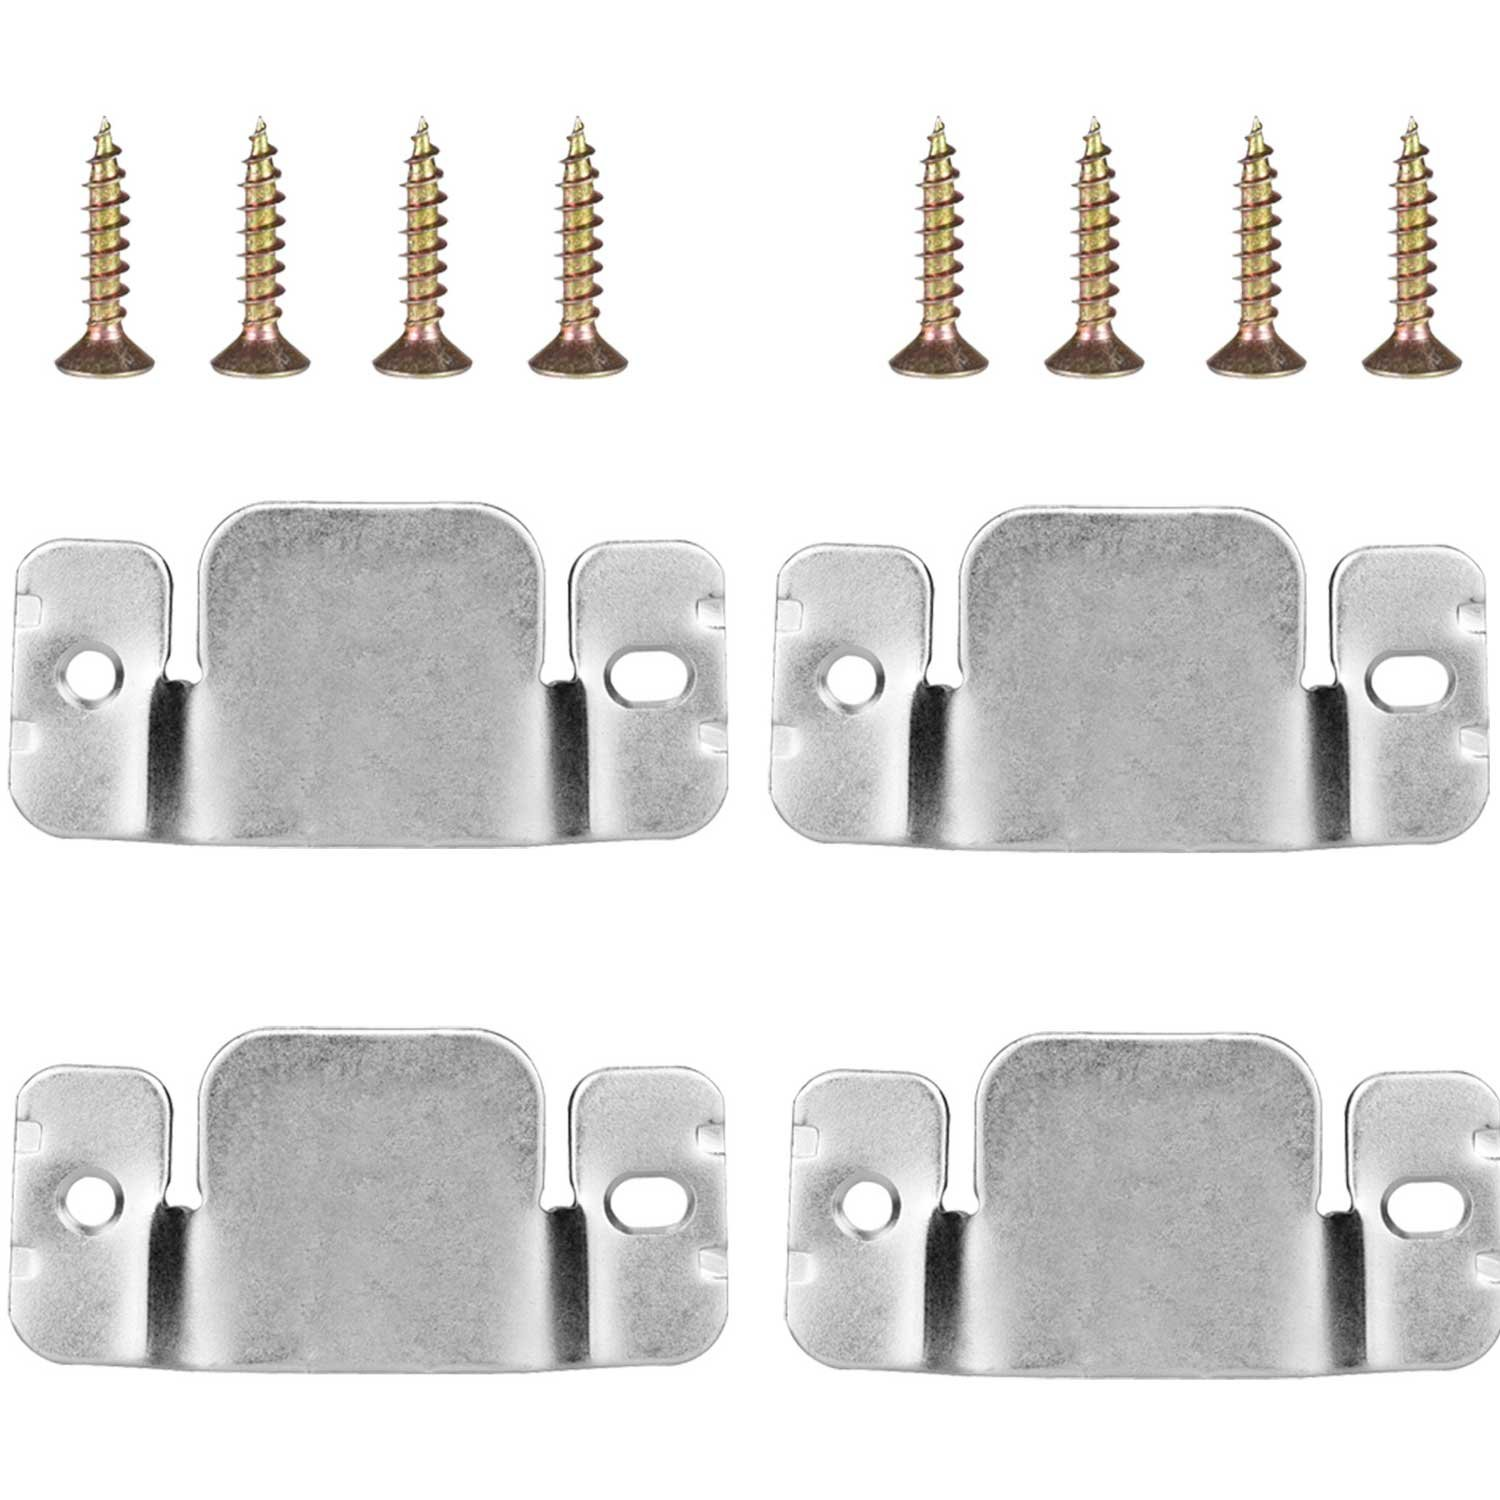 Mudder Universal Sectional Sofa Interlocking Sofa Connector Bracket with Screws, 4 Pieces COMIN18JU003920